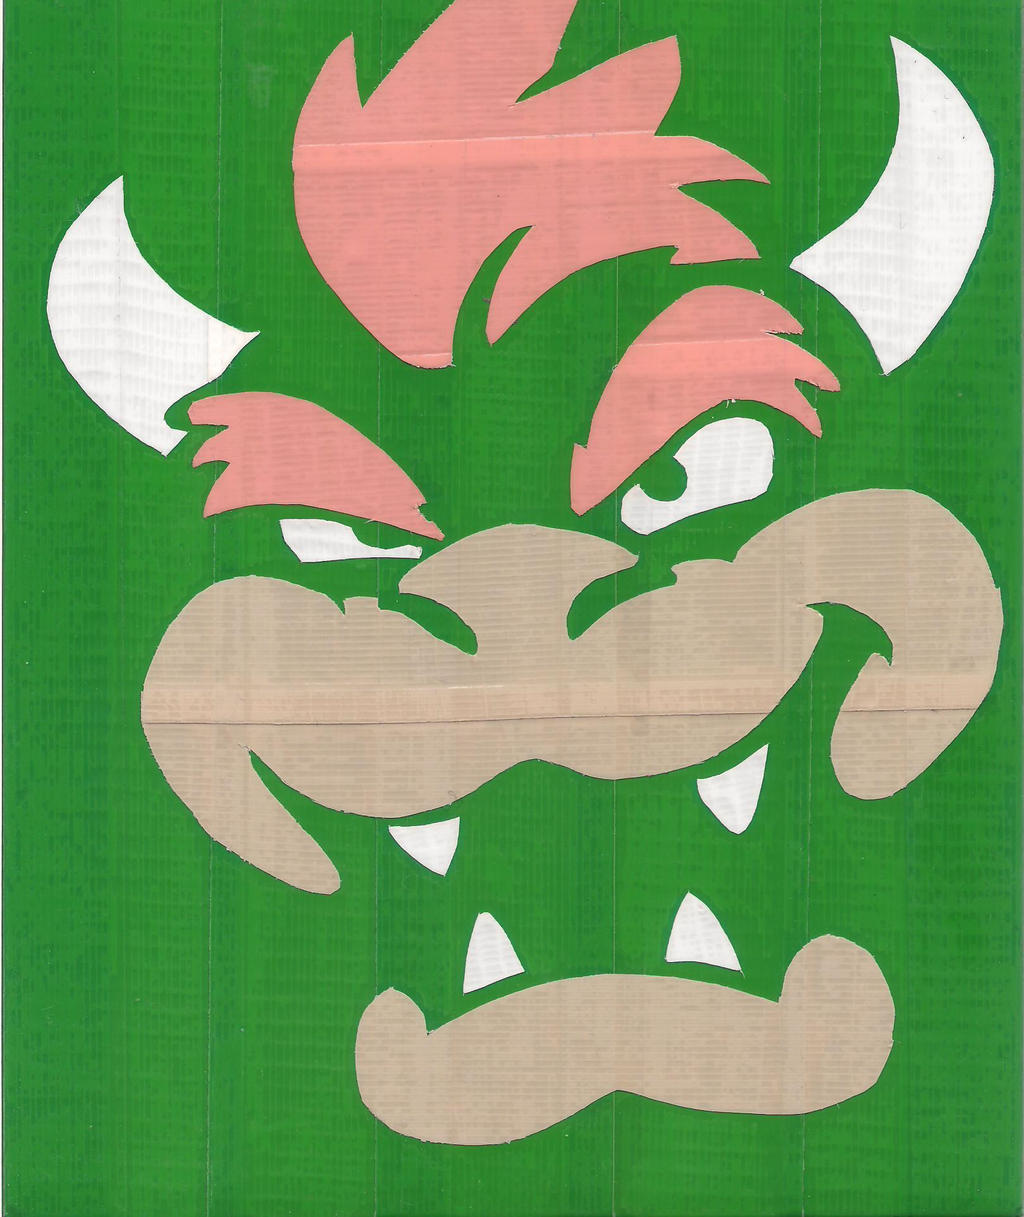 Bowser Duct Tape Print by DuctileCreations